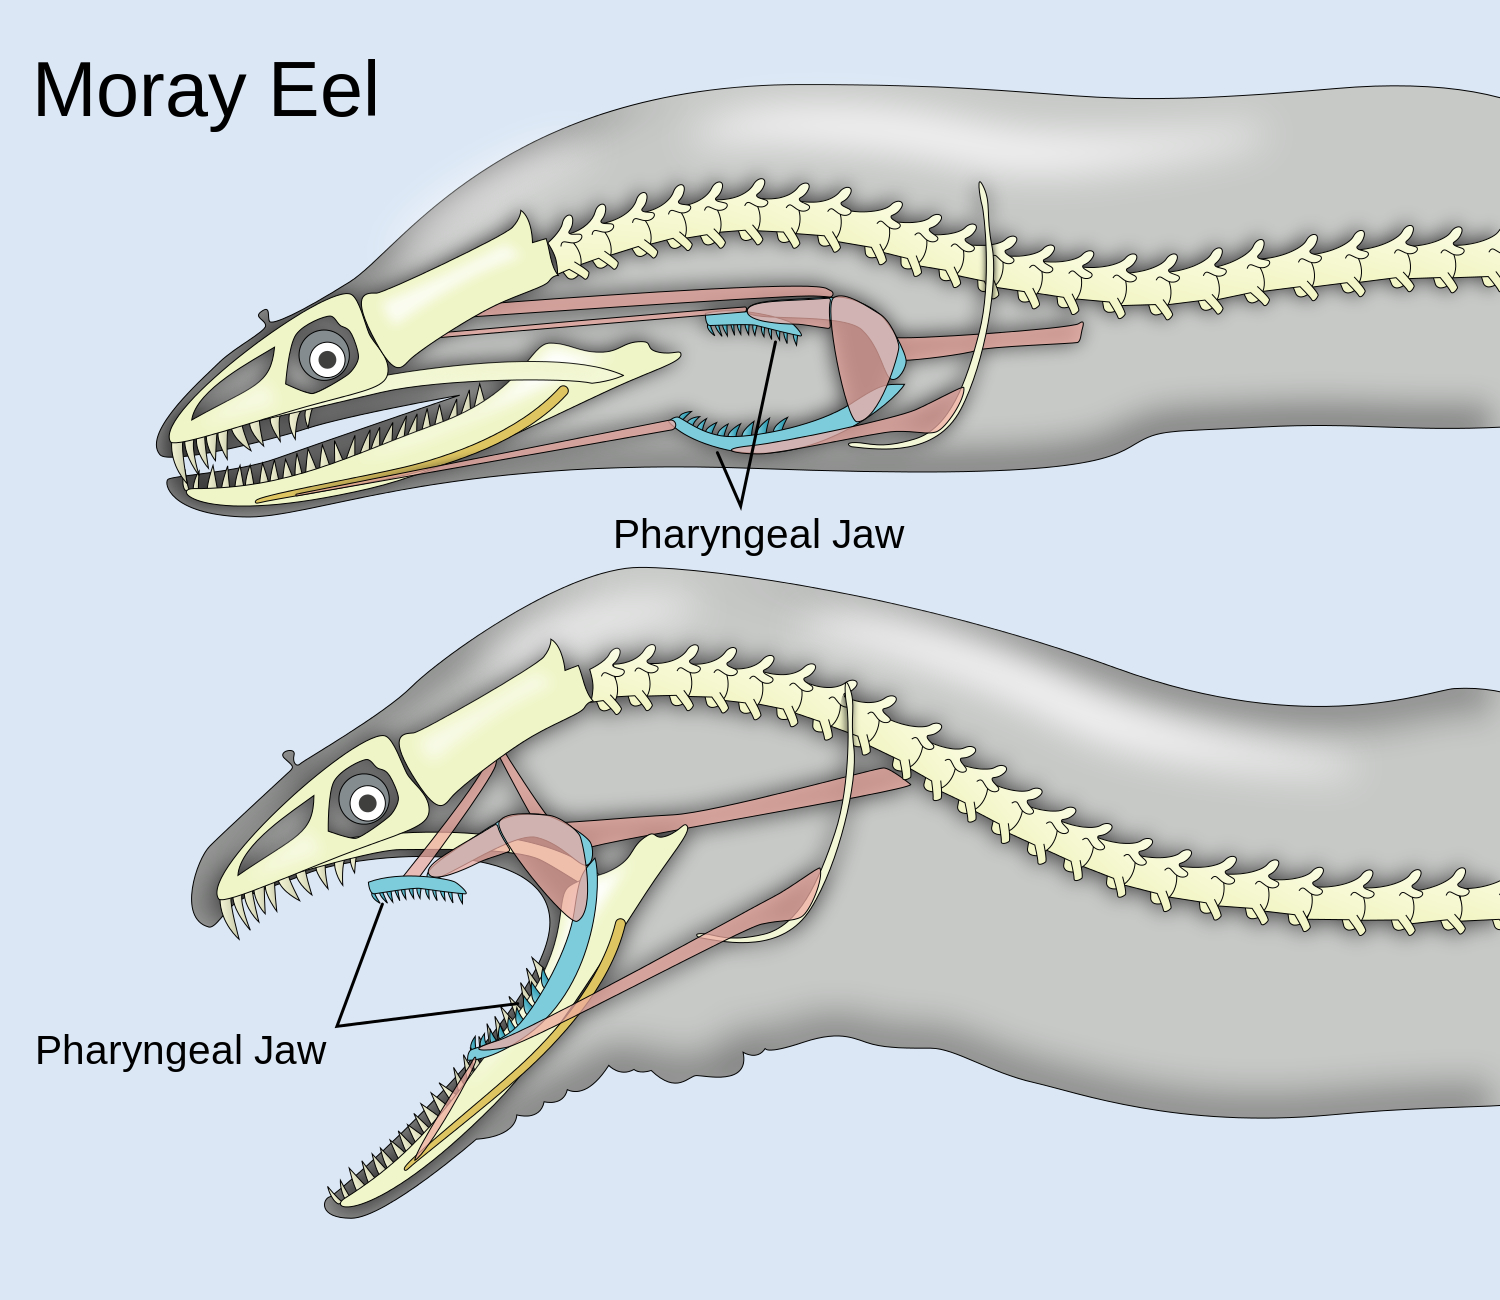 Pharyngeal jaws of moray eels.jpg